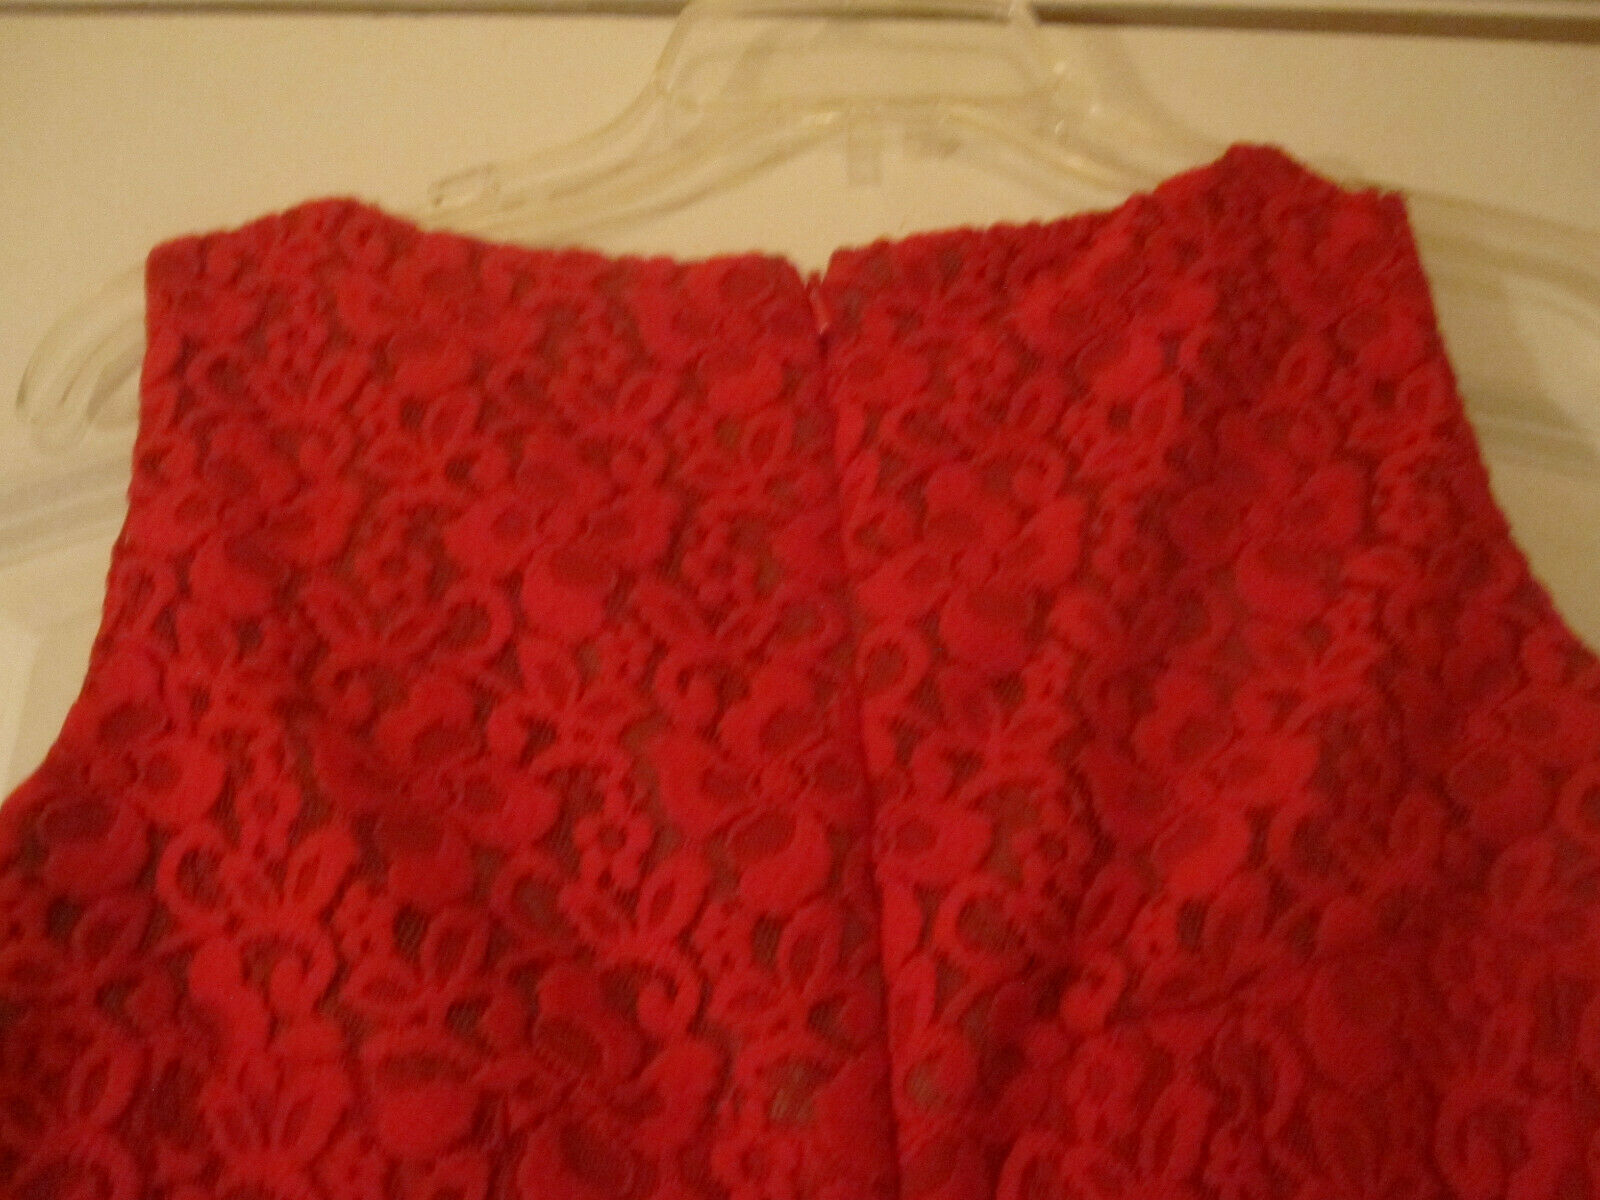 Anne Klein Womens Red Crochet Dress Lined Sleeveless Size 2 image 5